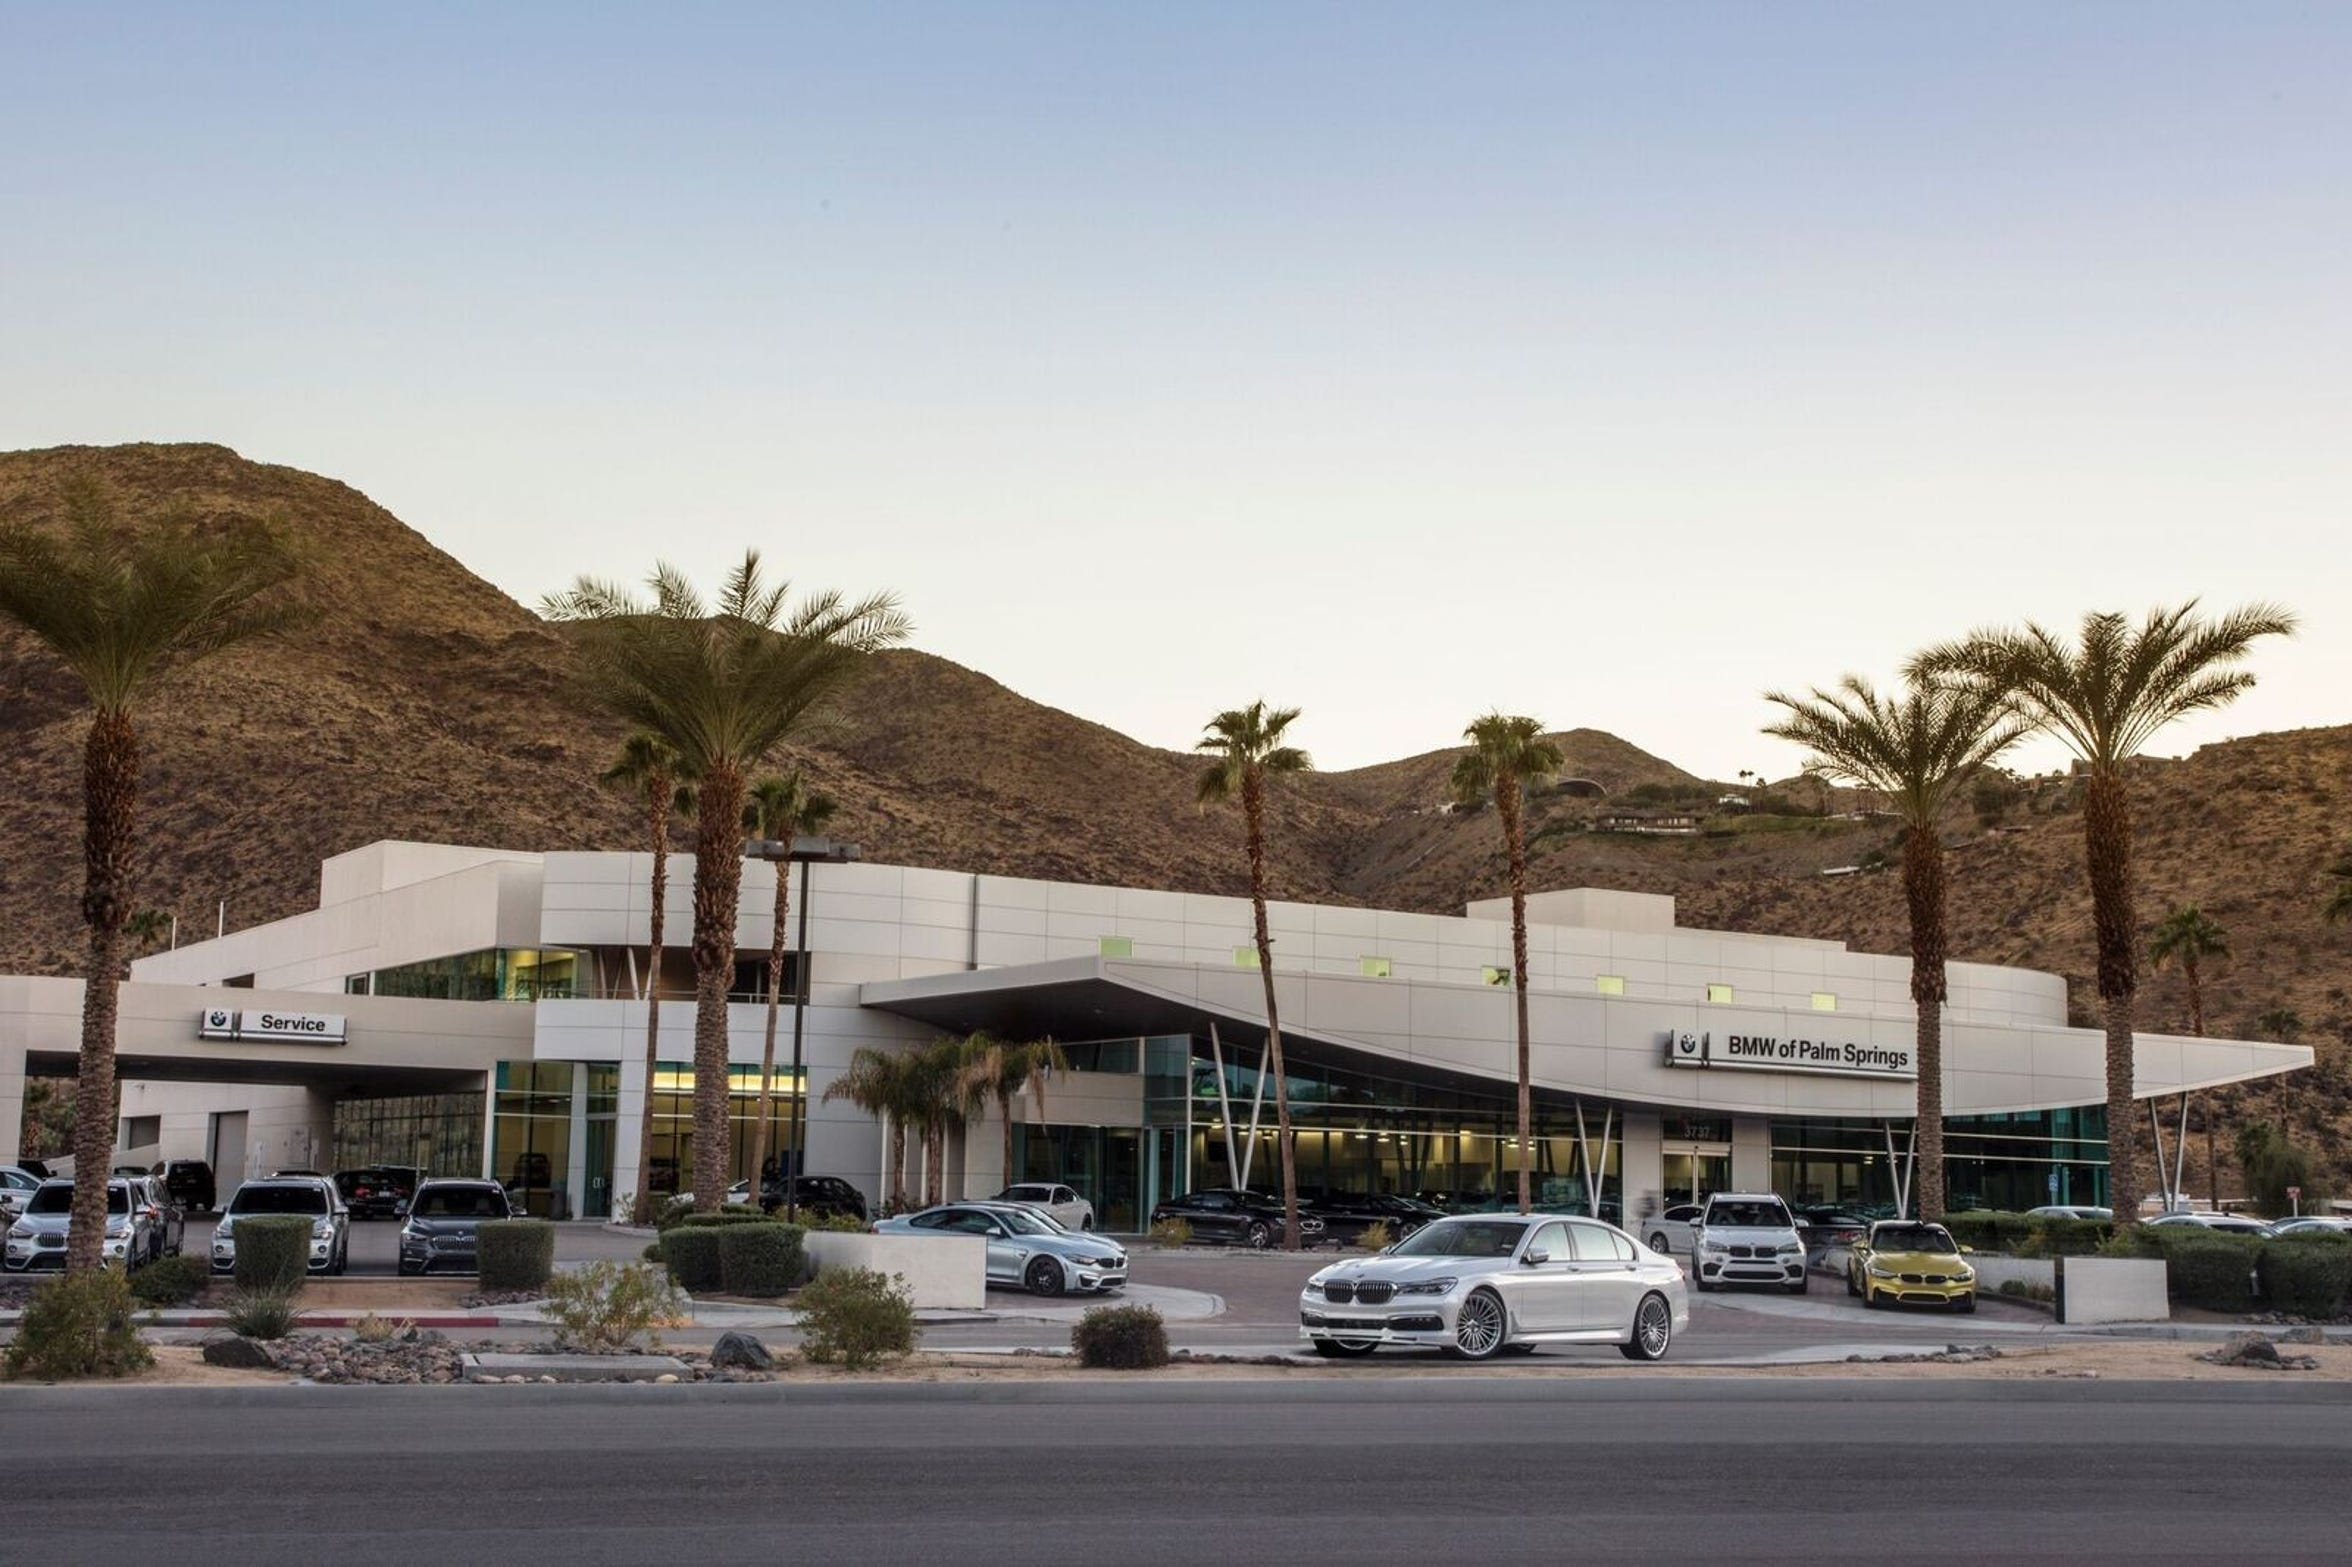 BMW of Palm Springs.